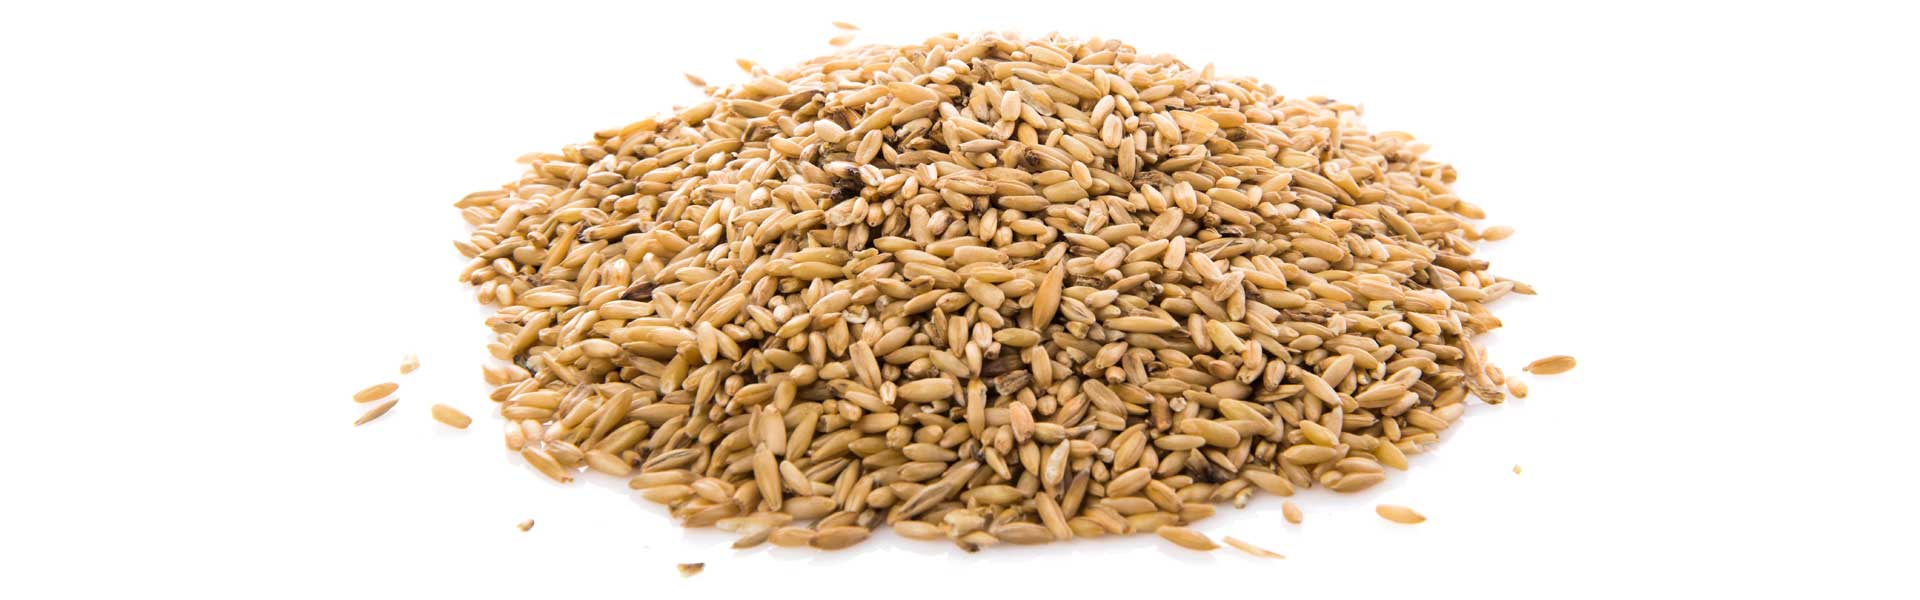 Why does stored grain need to be kept ventilated?